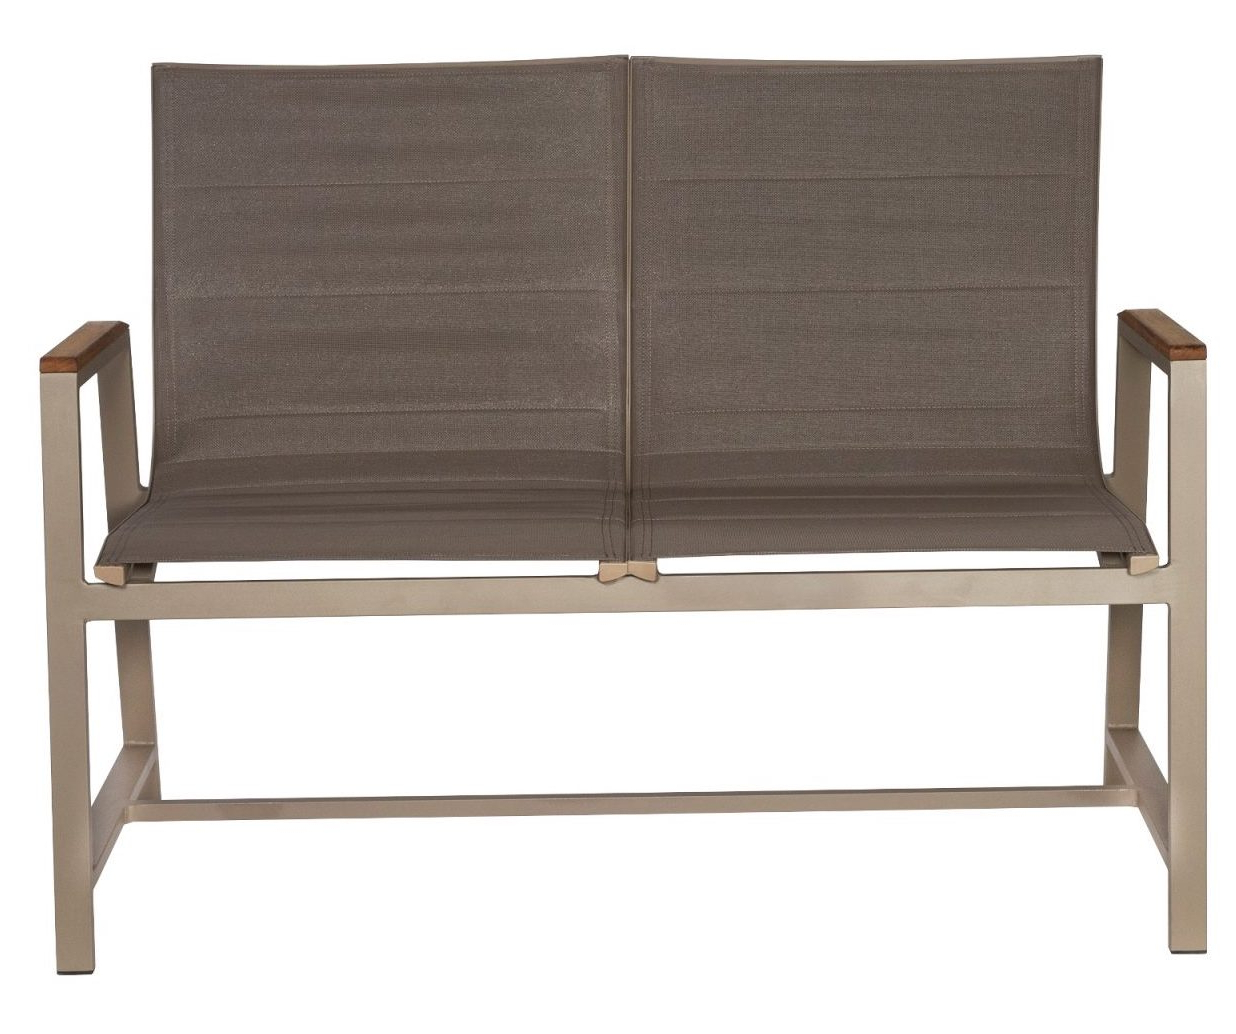 Fashionable Padded Sling Loveseats With Cushions With Regard To Outdoor Padded Sling Bench – Grd Brbp (Gallery 7 of 30)